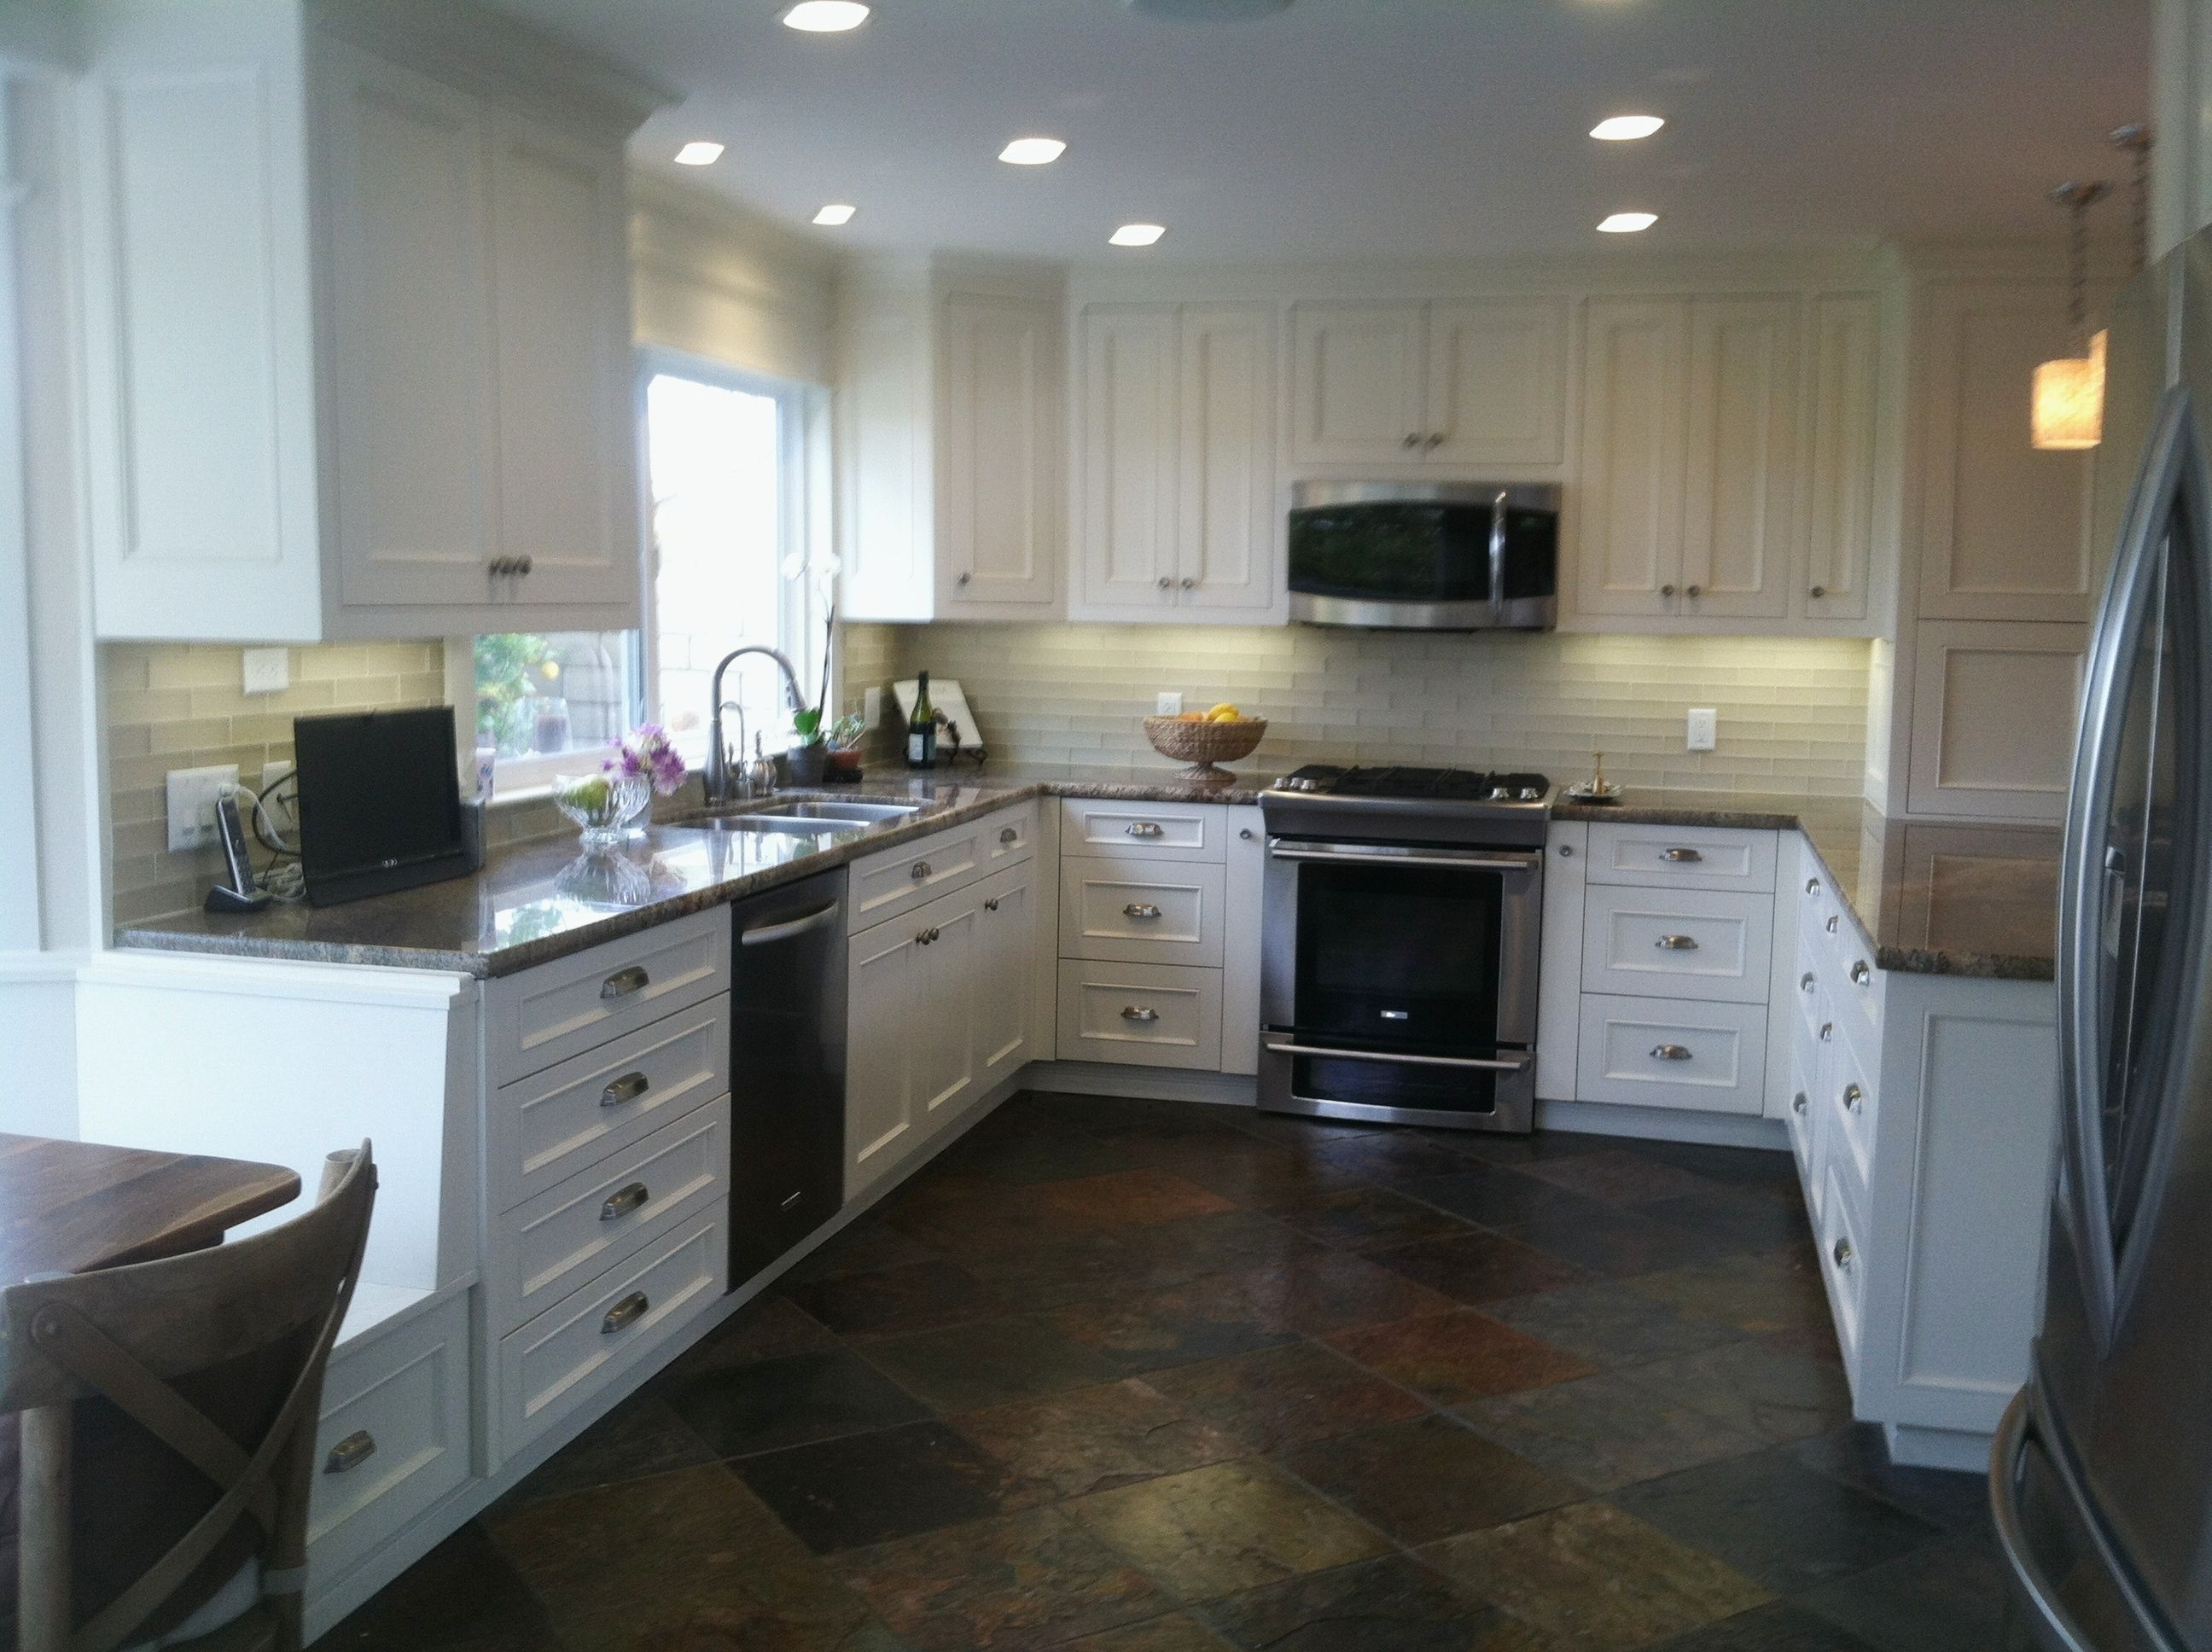 flush Inset Cabinets | Inset cabinets, Custom cabinetry ...